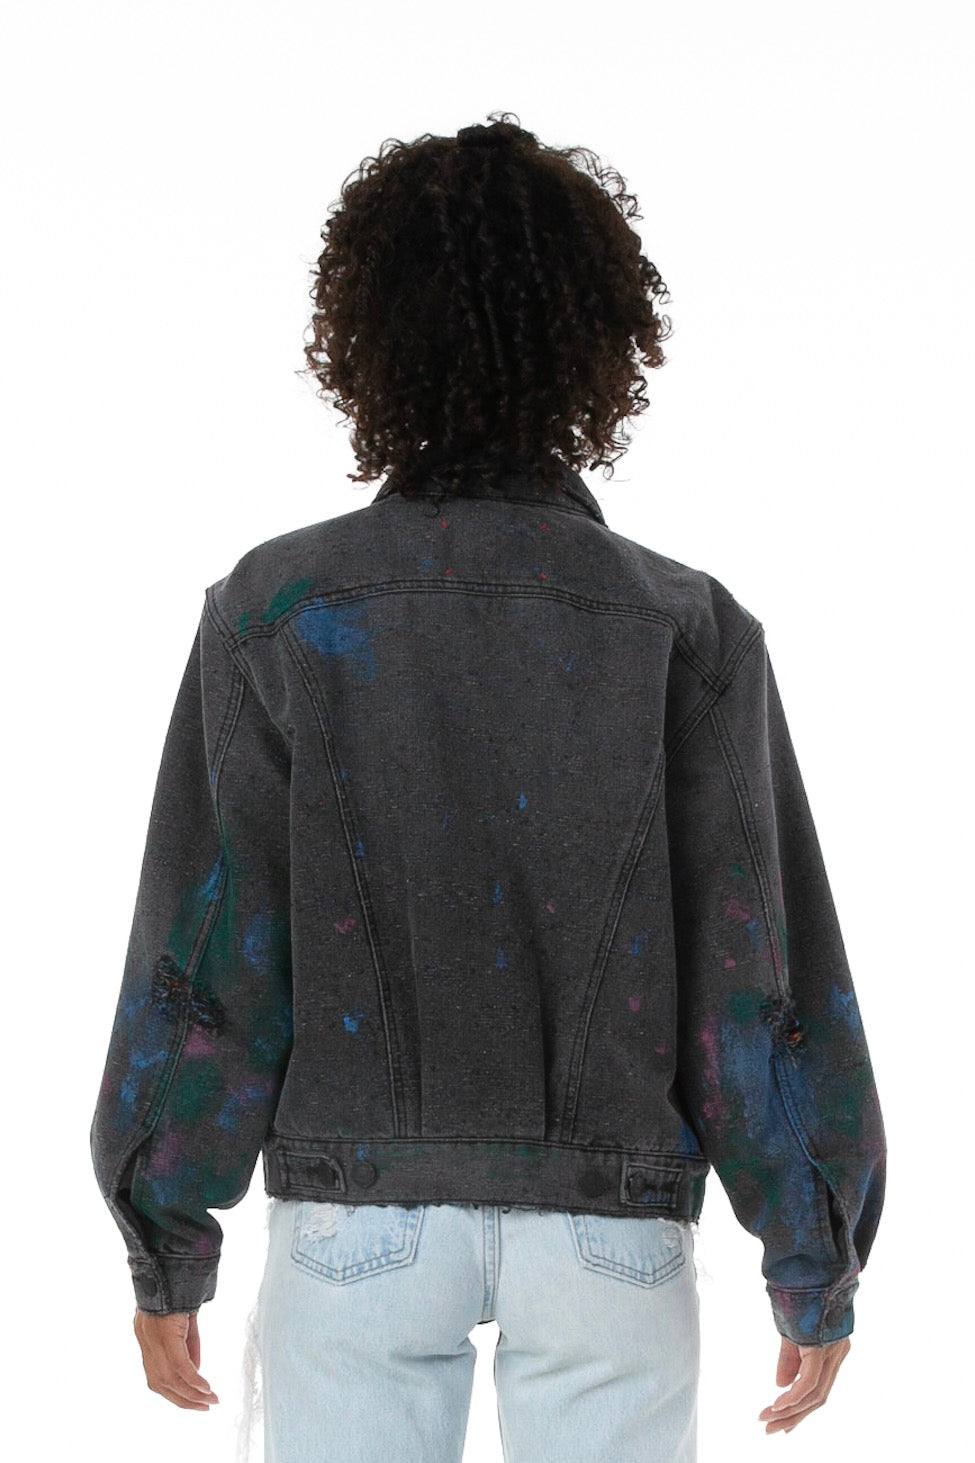 Front of female Model Wearing Artists' Denim Jacket